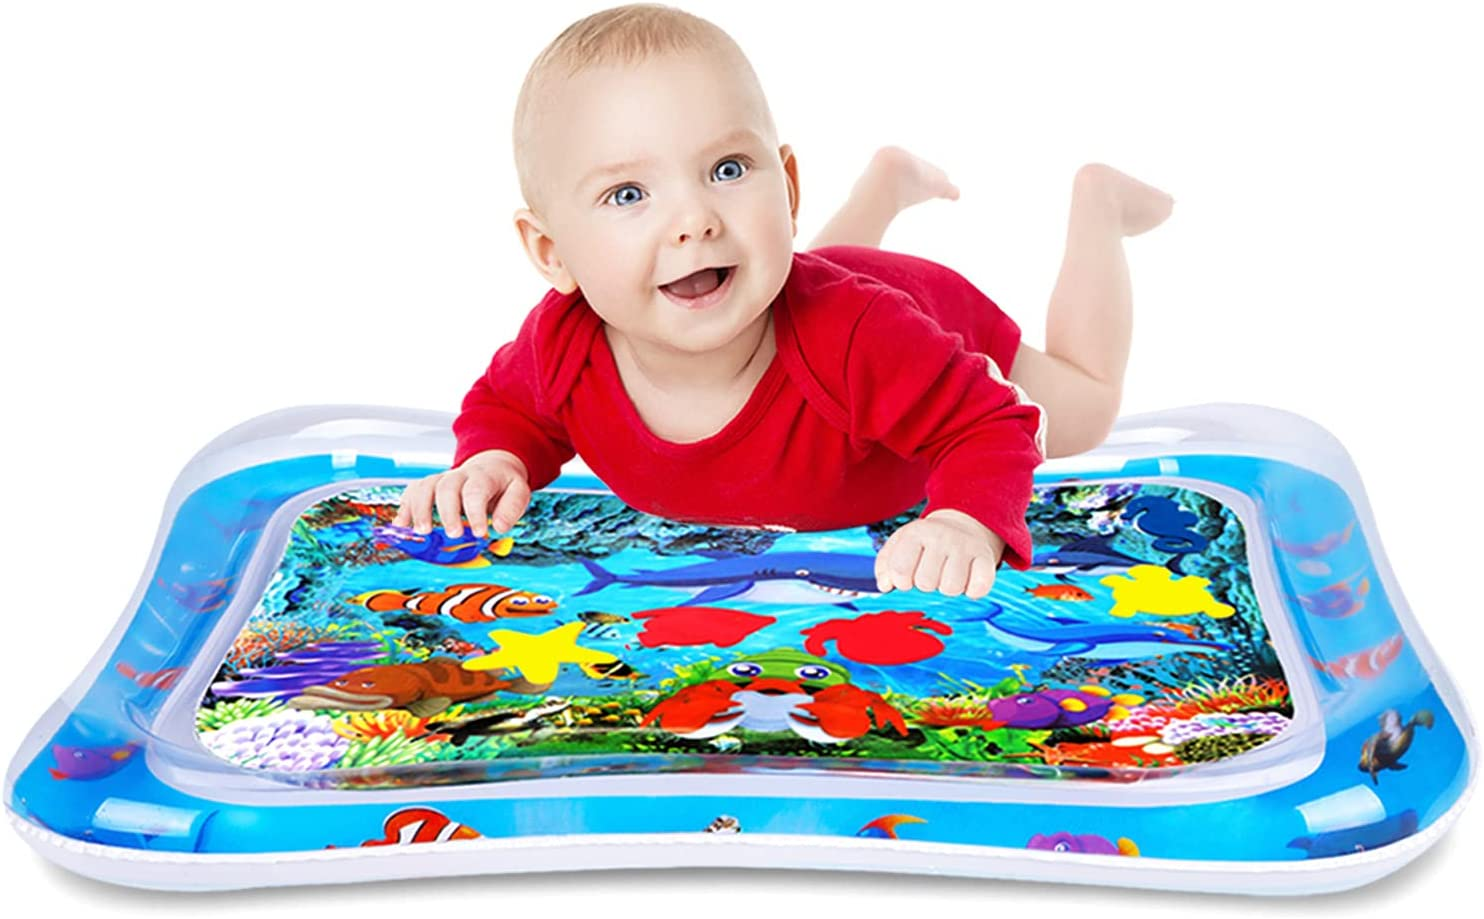 WSPER Tummy Time Water Mat Inflatable Baby Water Play mat for 3+ Months Newborn Girl & Boy Early Activity Center